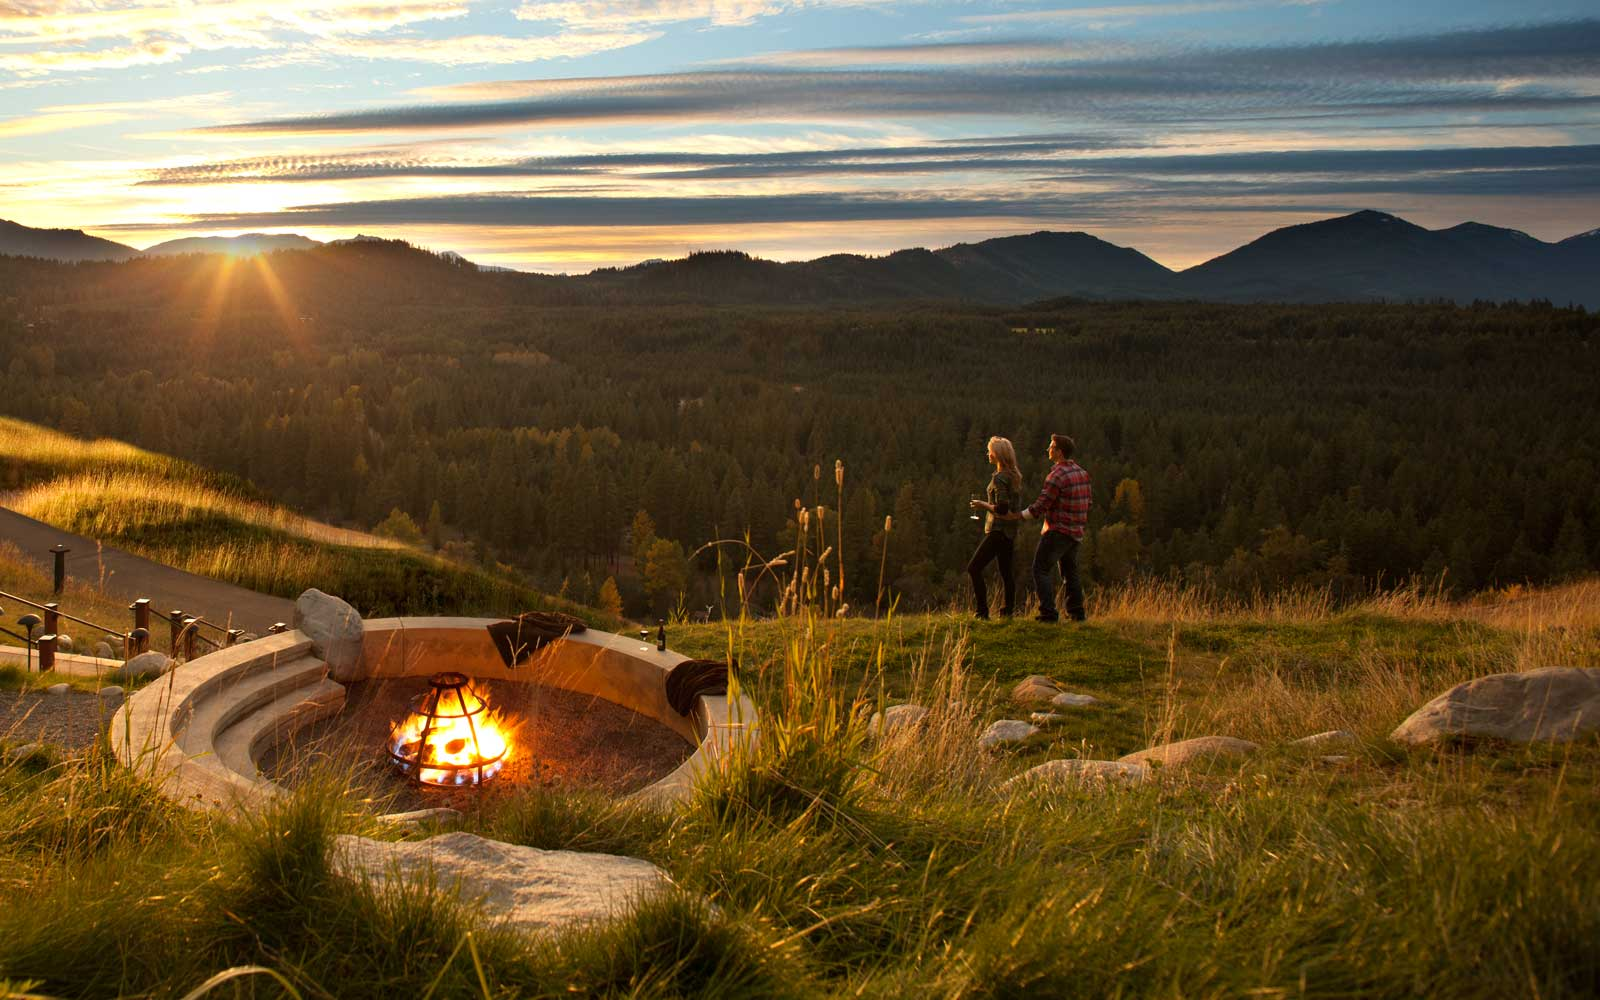 Get 30% off a 2-night 'Pints and Bikes' Tour at the Suncadia Resort in the Cascade Mountains